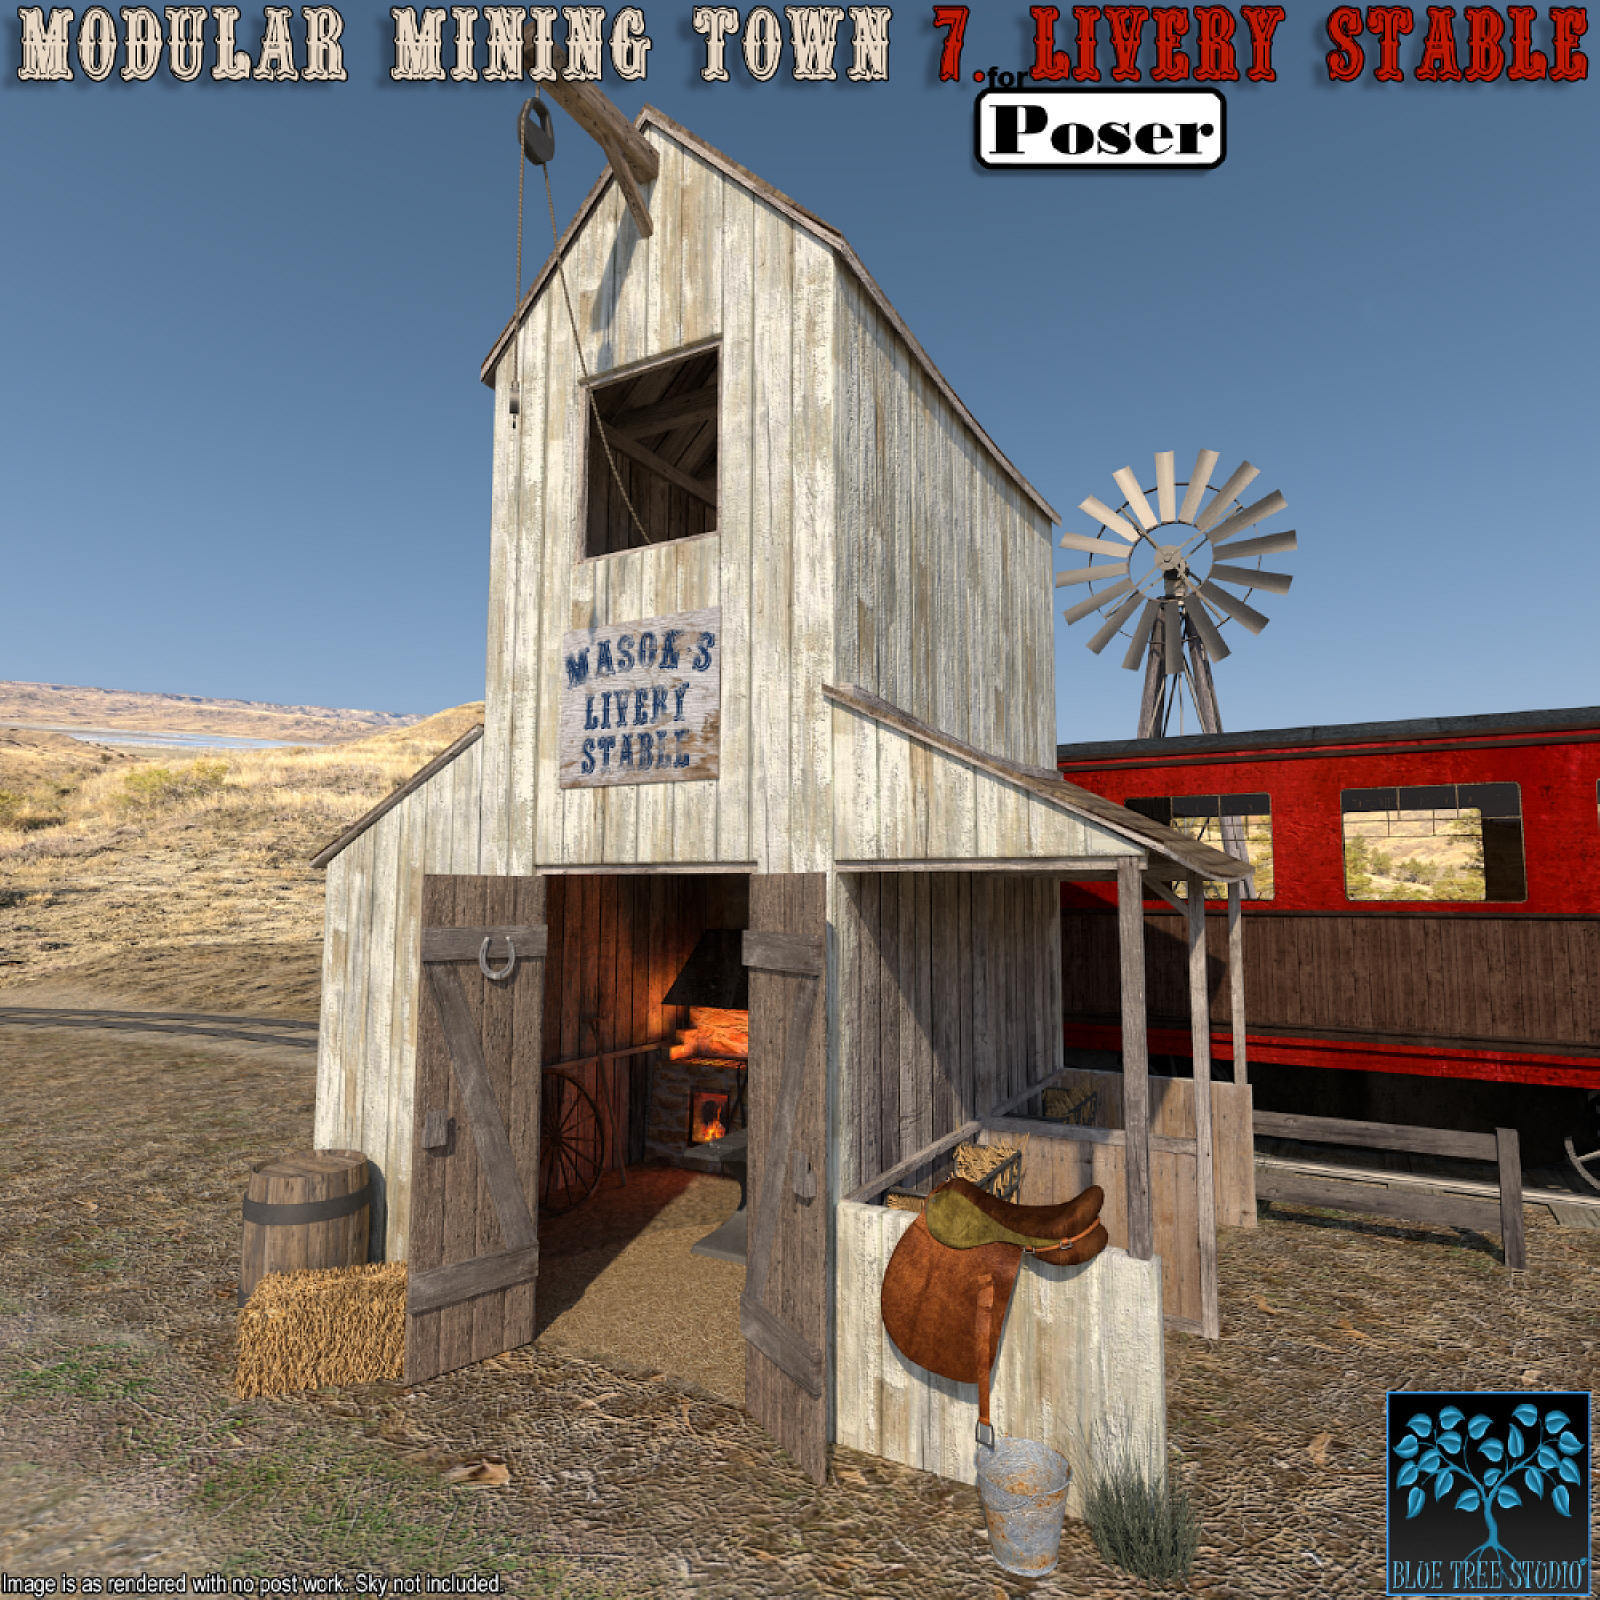 Modular Mining Town: 7. Livery Stable for Poser by BlueTreeStudio